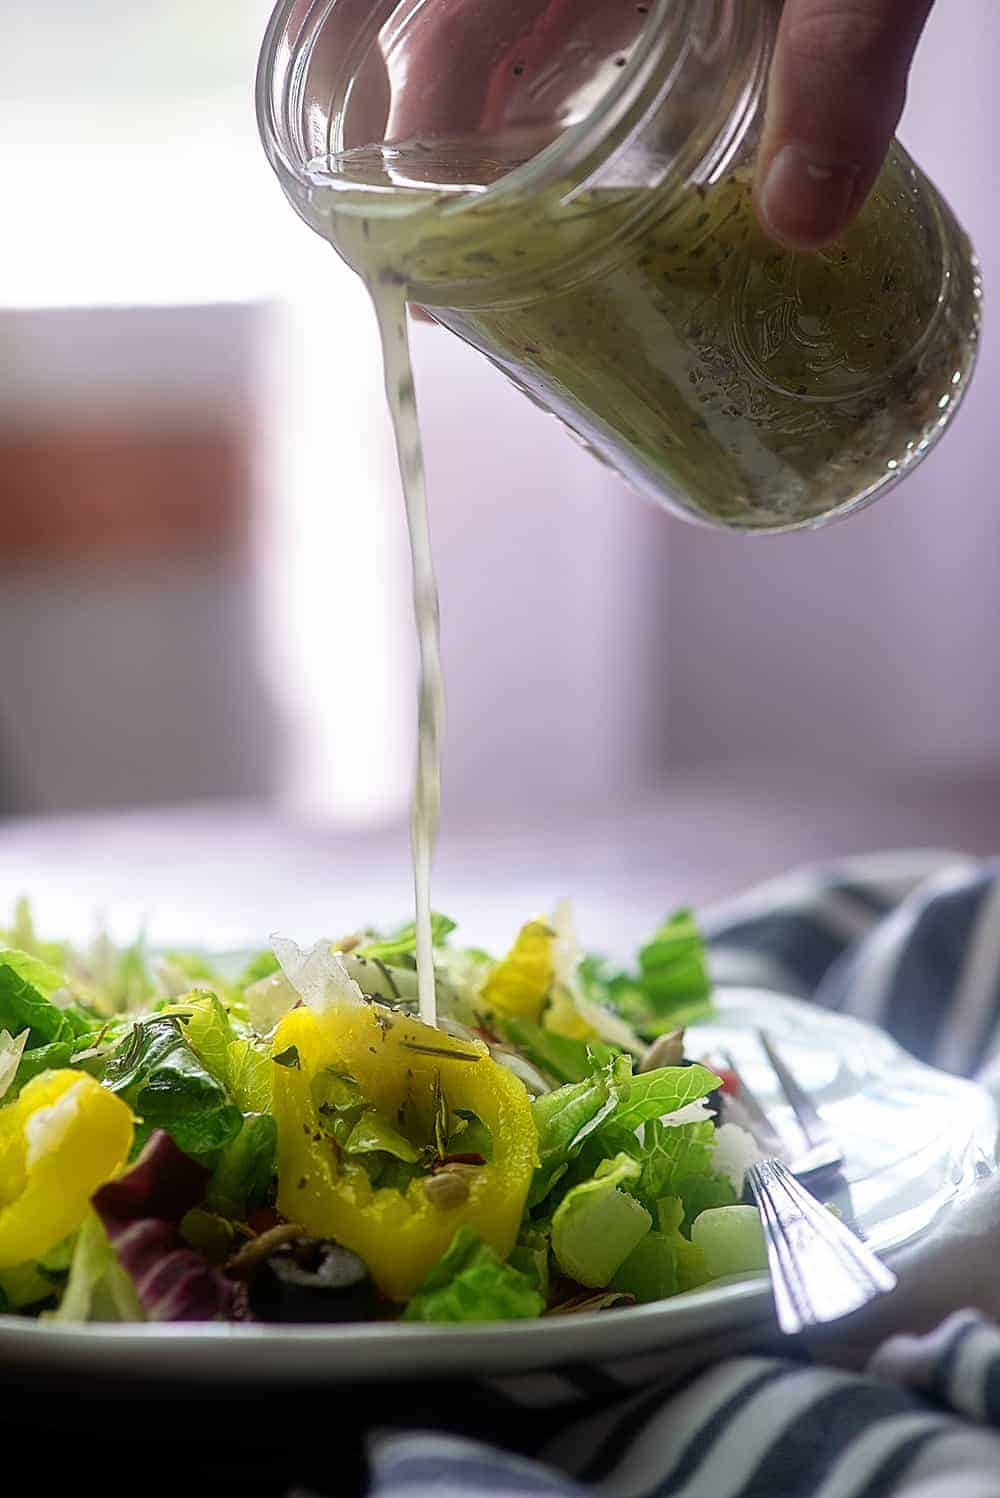 homemade Italian dressing being poured out of a jar onto a salad